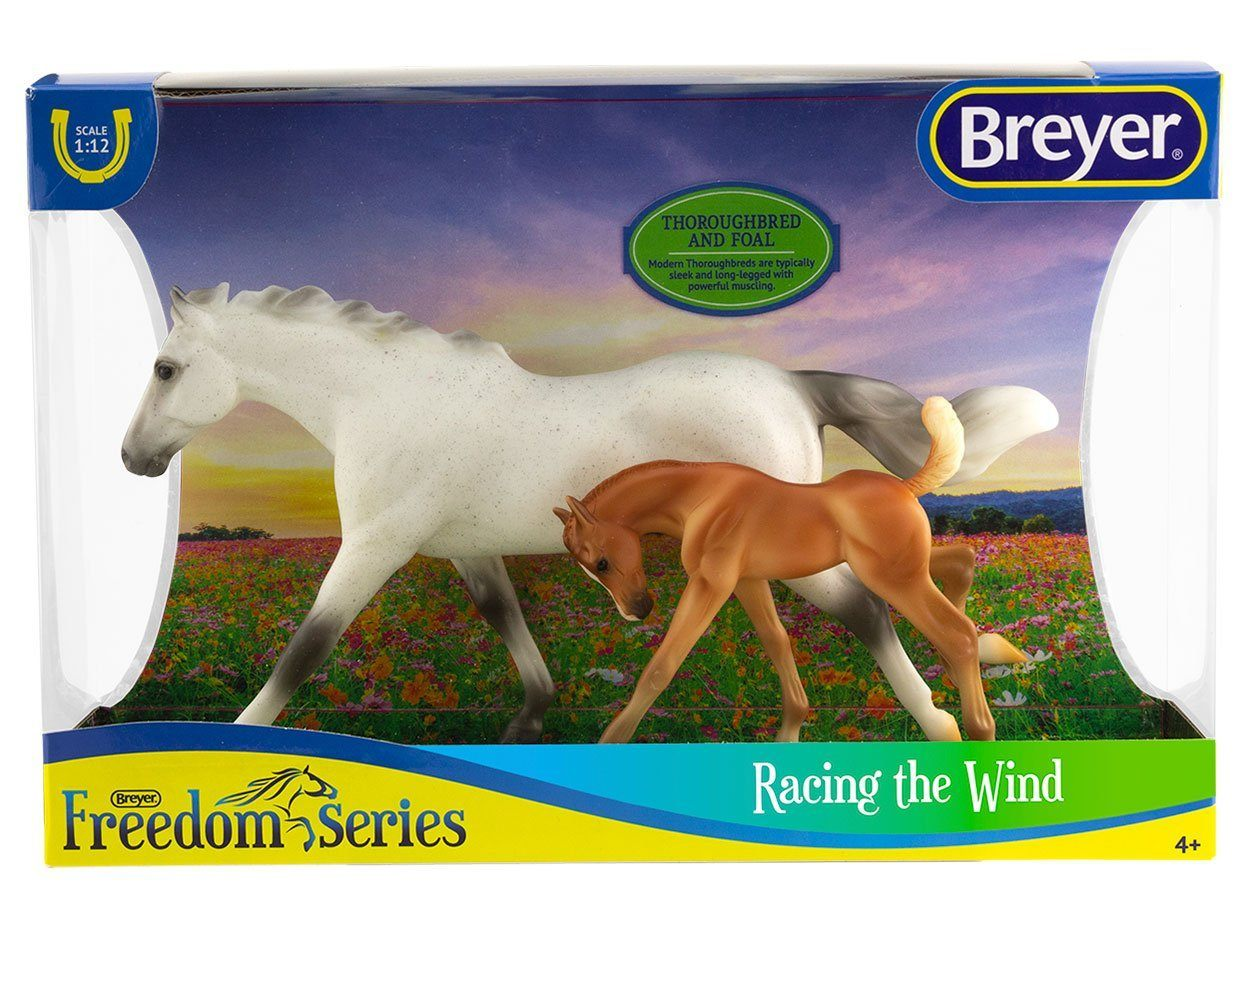 Breyer Classics #62208 Racing the Wind Horse - New Factory Sealed